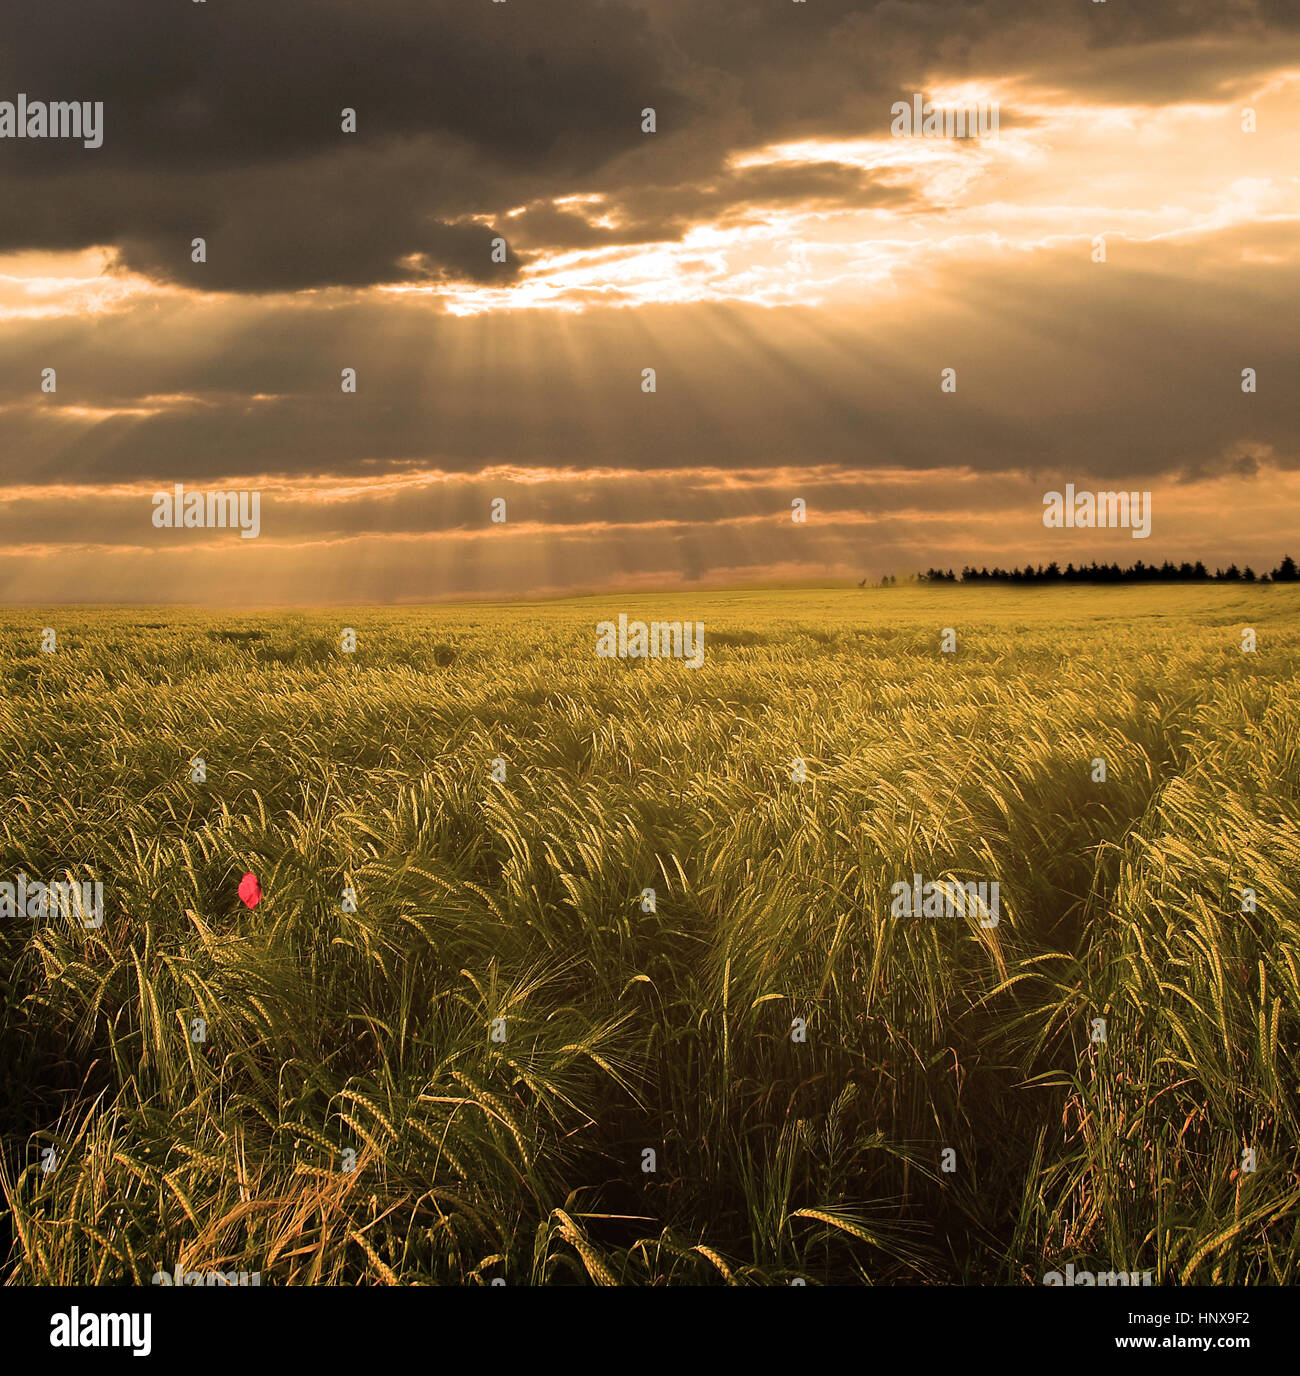 Wheat field in sunset - Stock Image